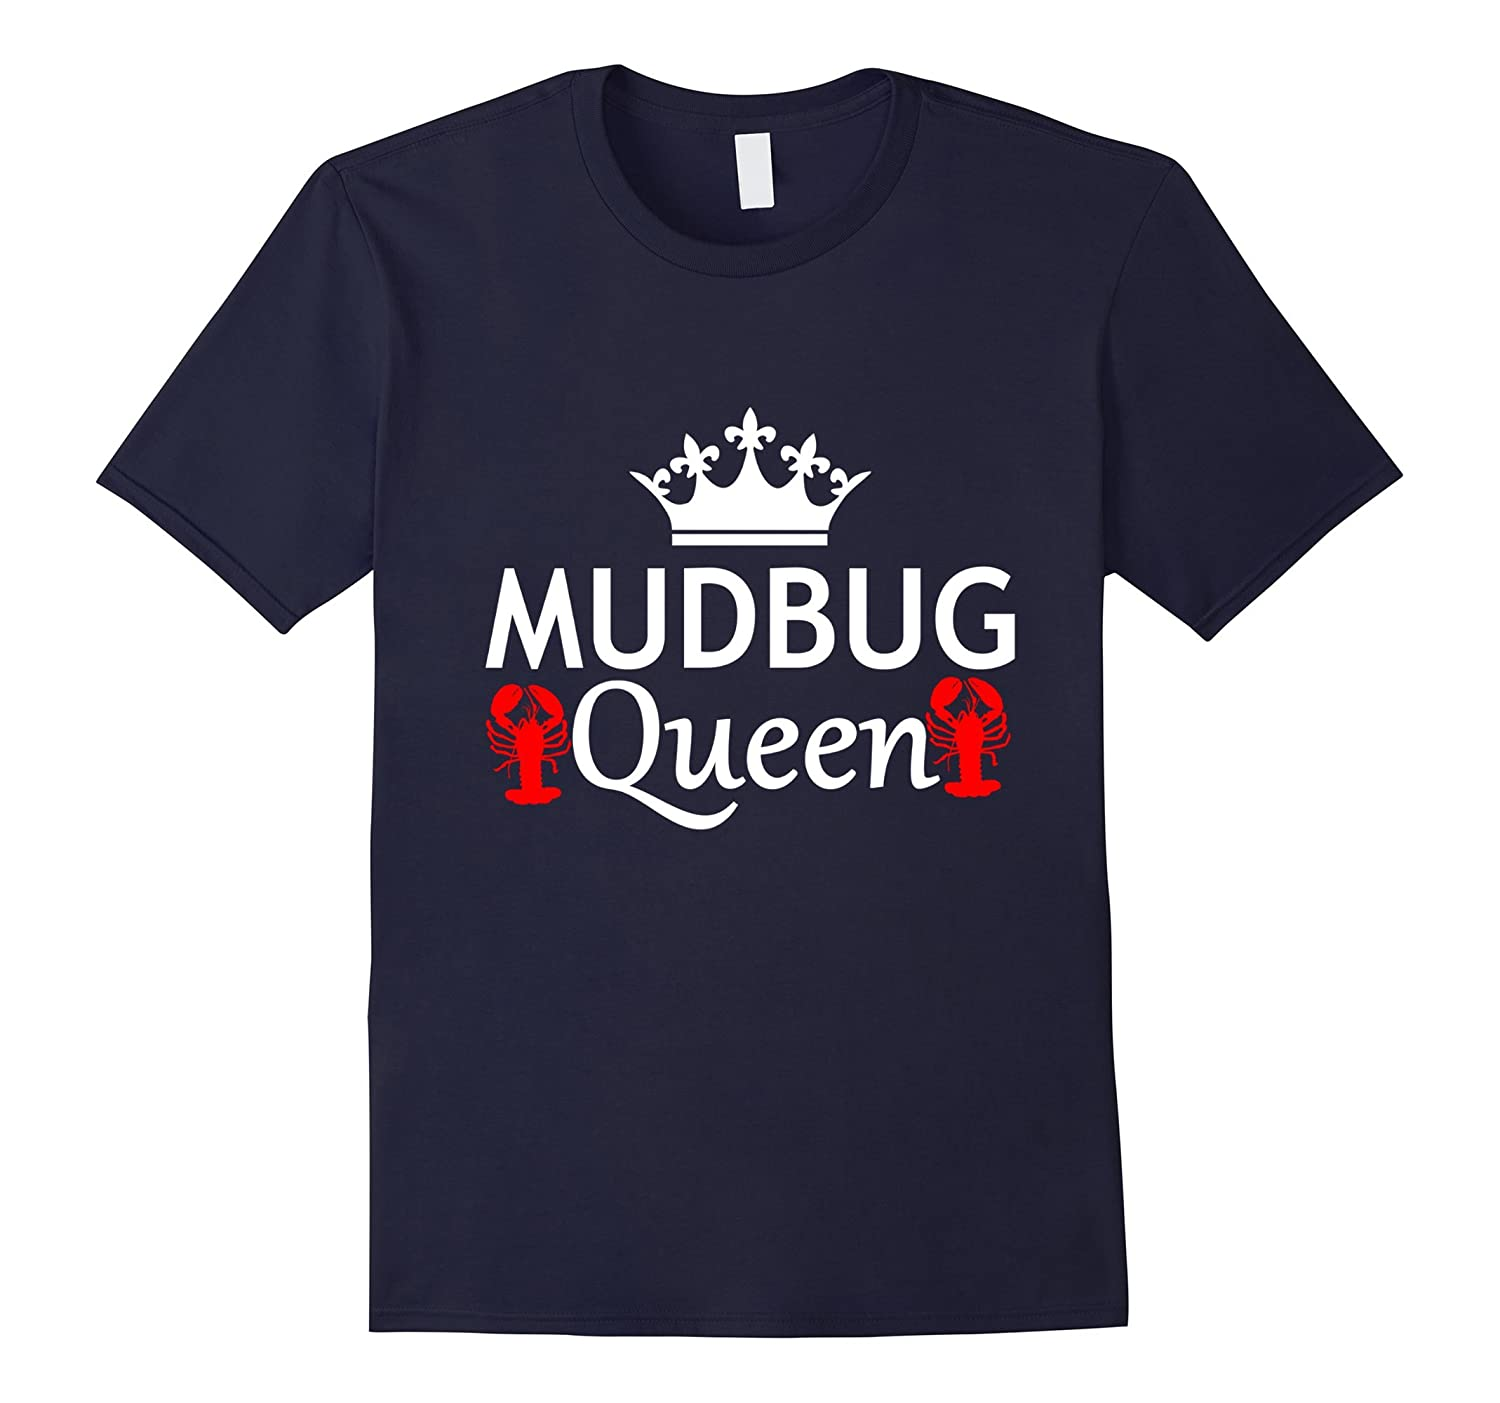 Mudbug Queen Funny Crawfish Louisiana Cajun Saying T-Shirt-TD